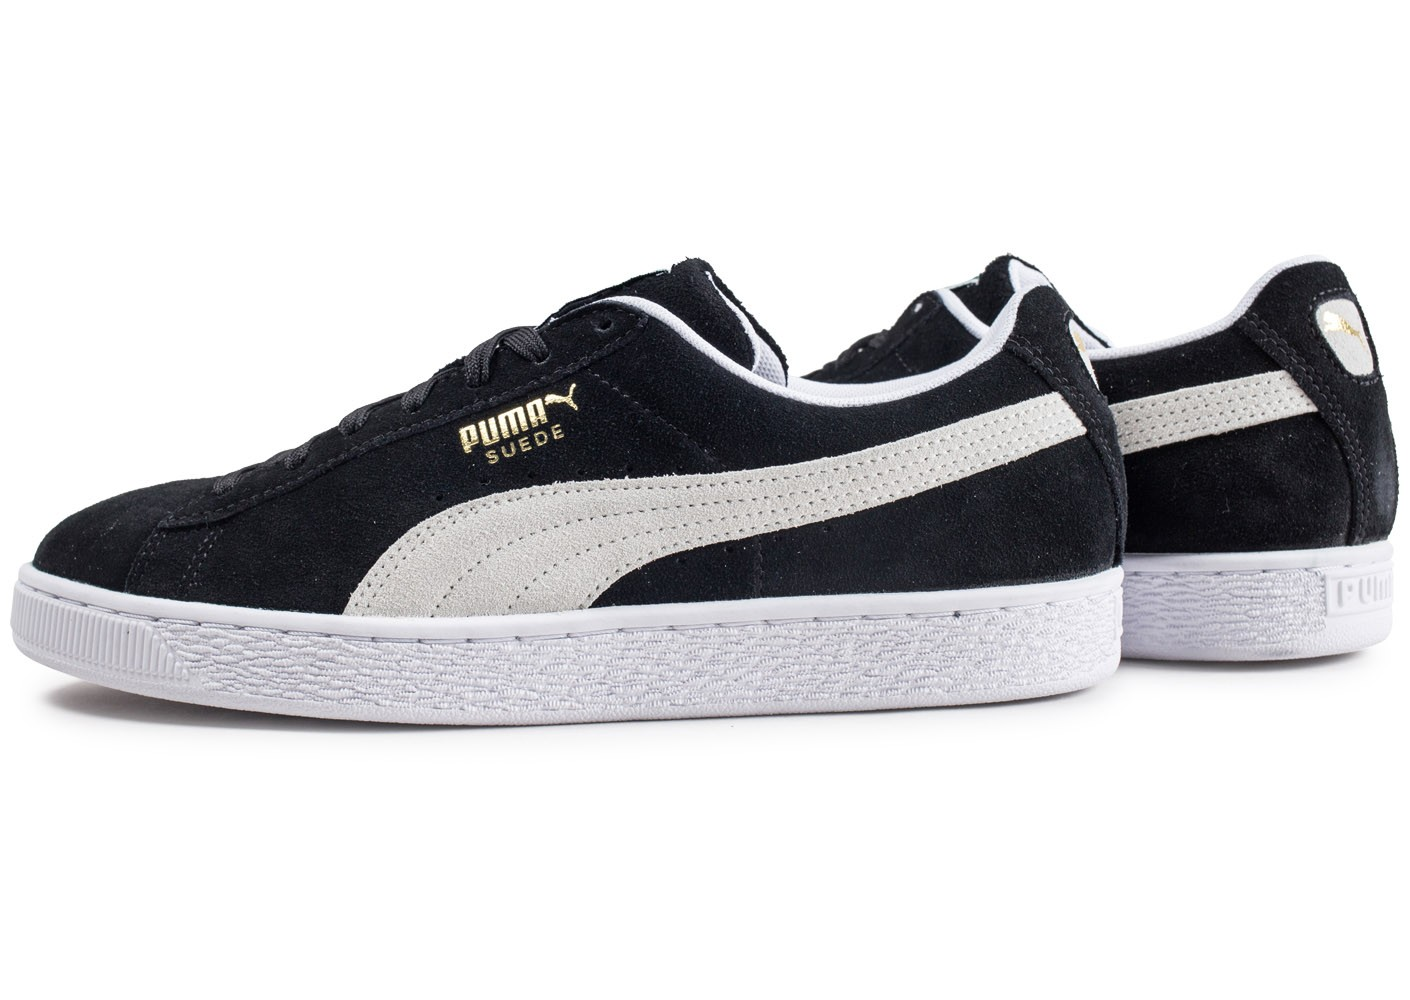 Homme Classic Baskets Puma Noire Chausport Suede Chaussures gy67Ybf